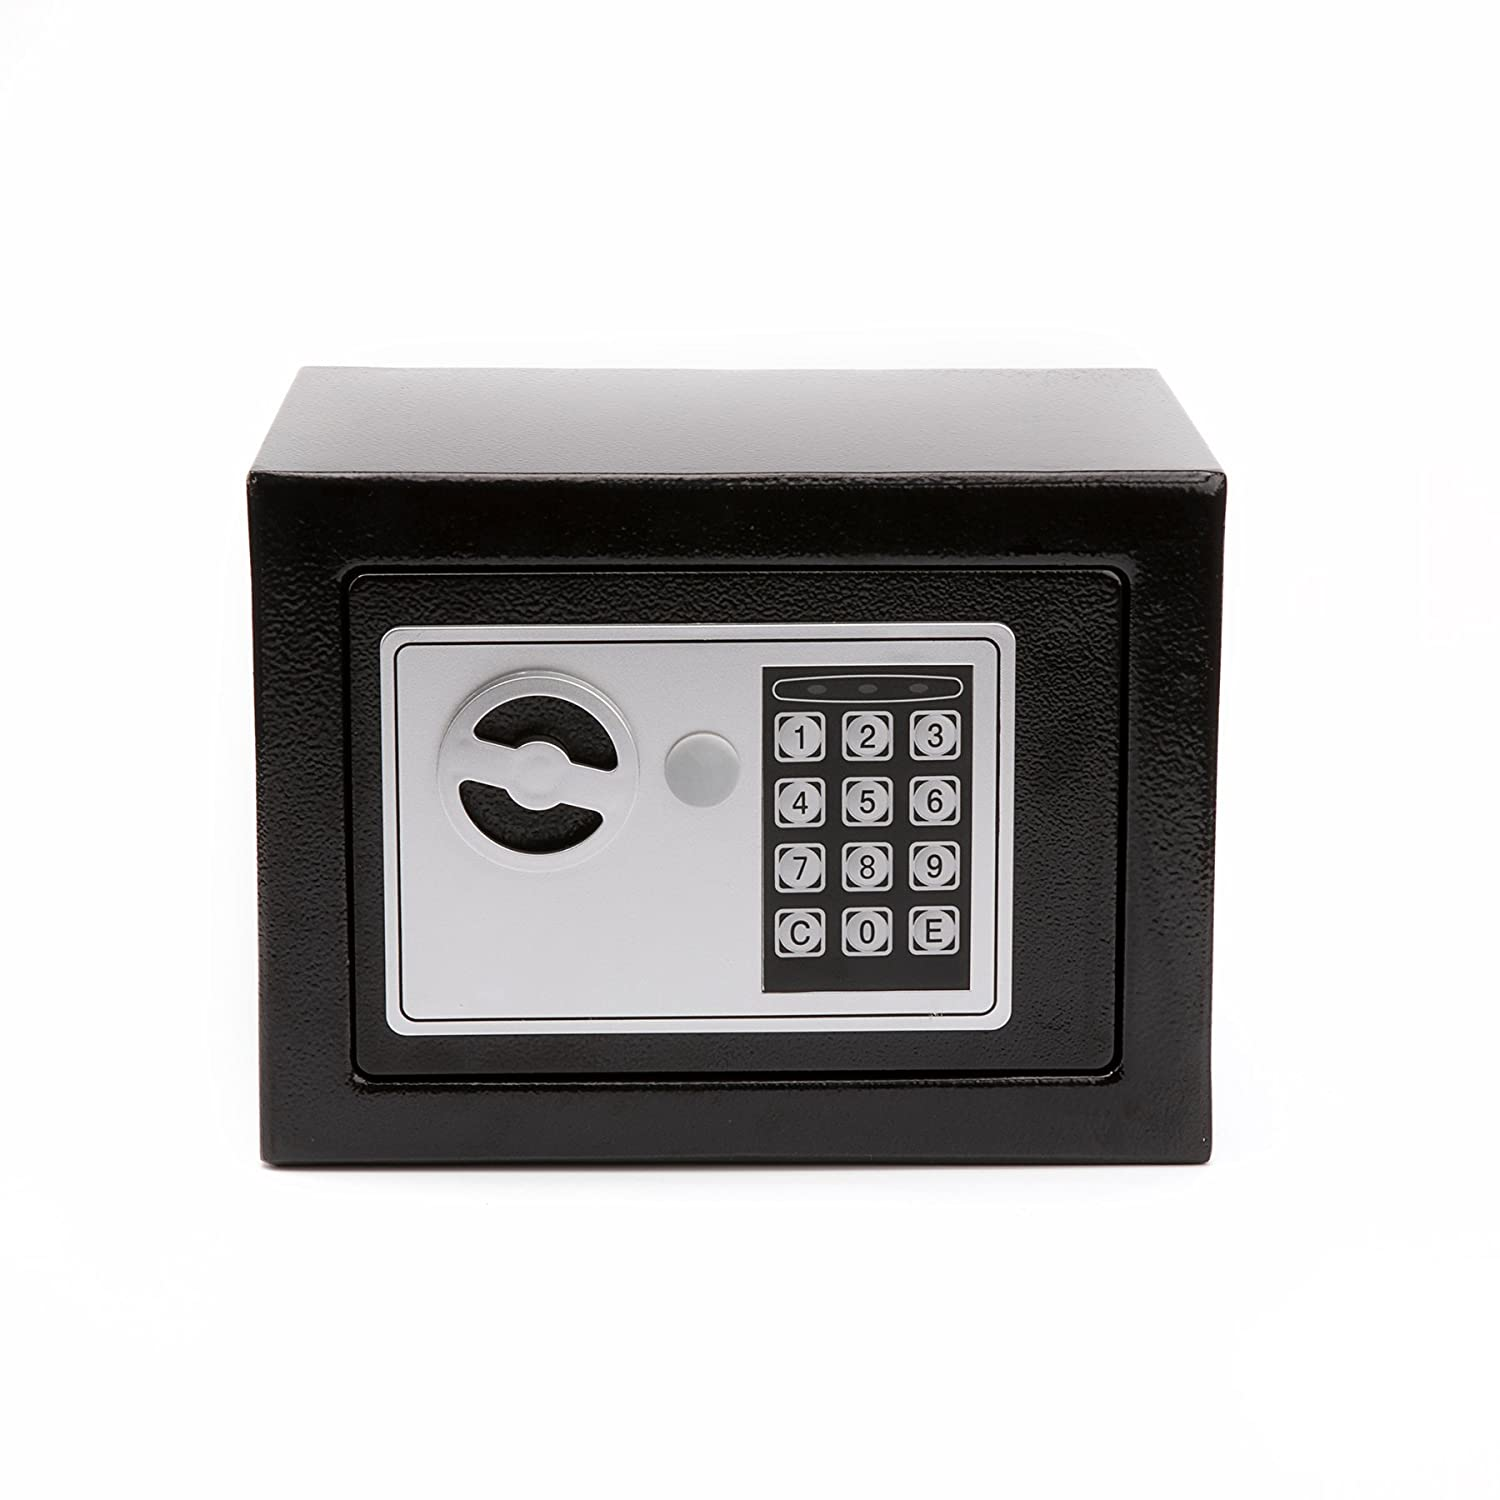 Windaze Electronic Digital Safe Box Keypad Lock For Gun Simple Combination Integrated Circuits Electronics Cash Jewelry Valuable Storage 023 Cubic Feet Office Products